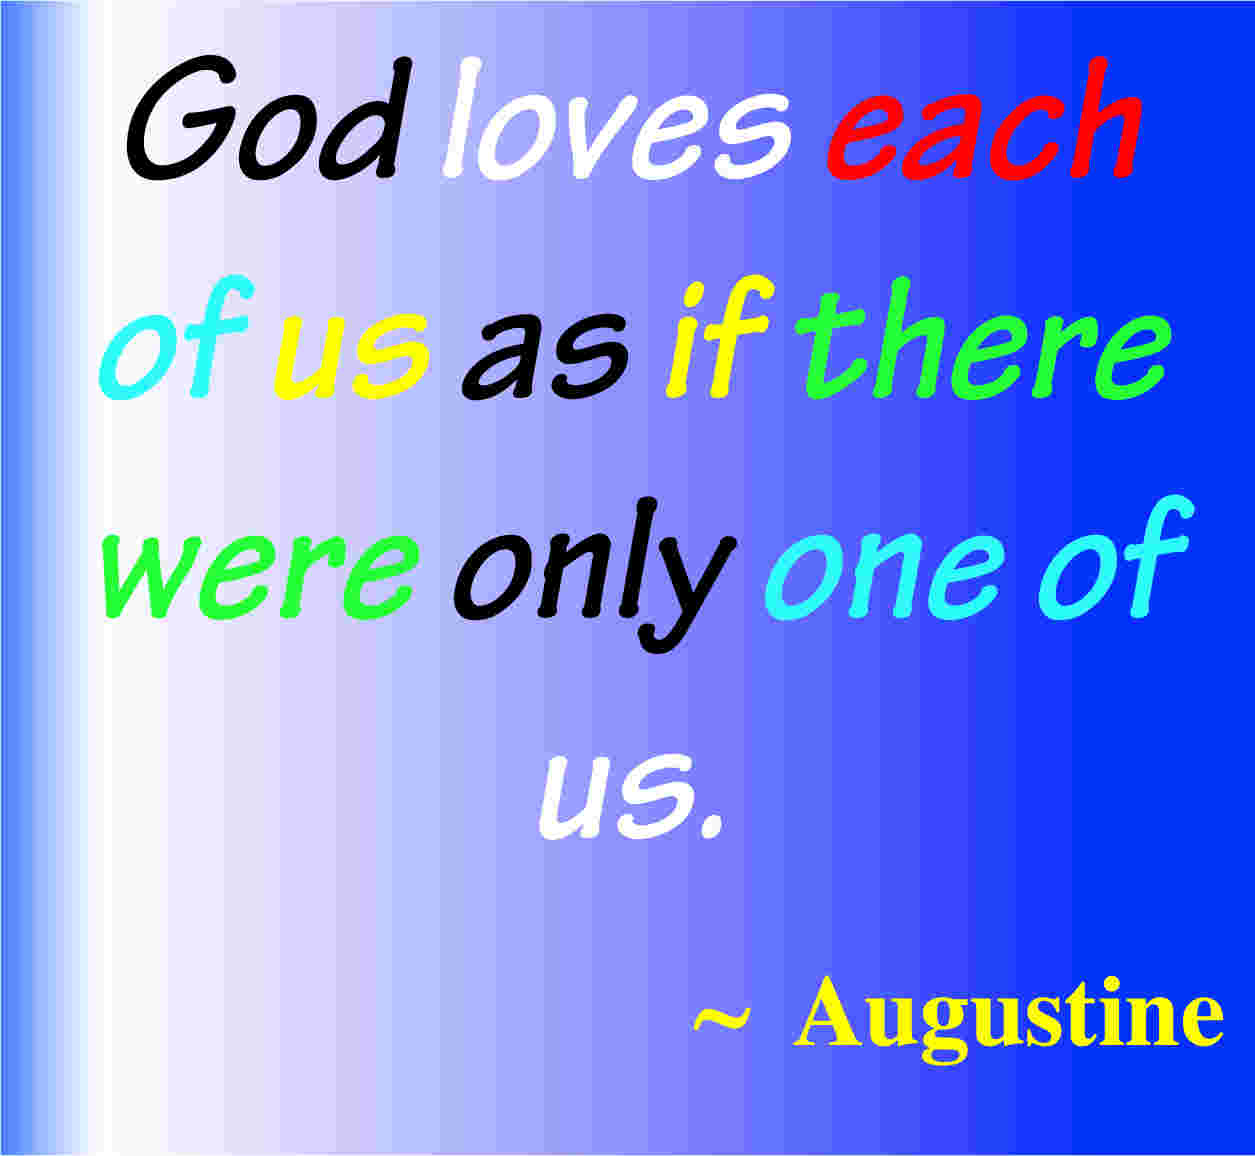 Quotes From The Bible About Love 20 Inspirational Bible Verses About God's Love